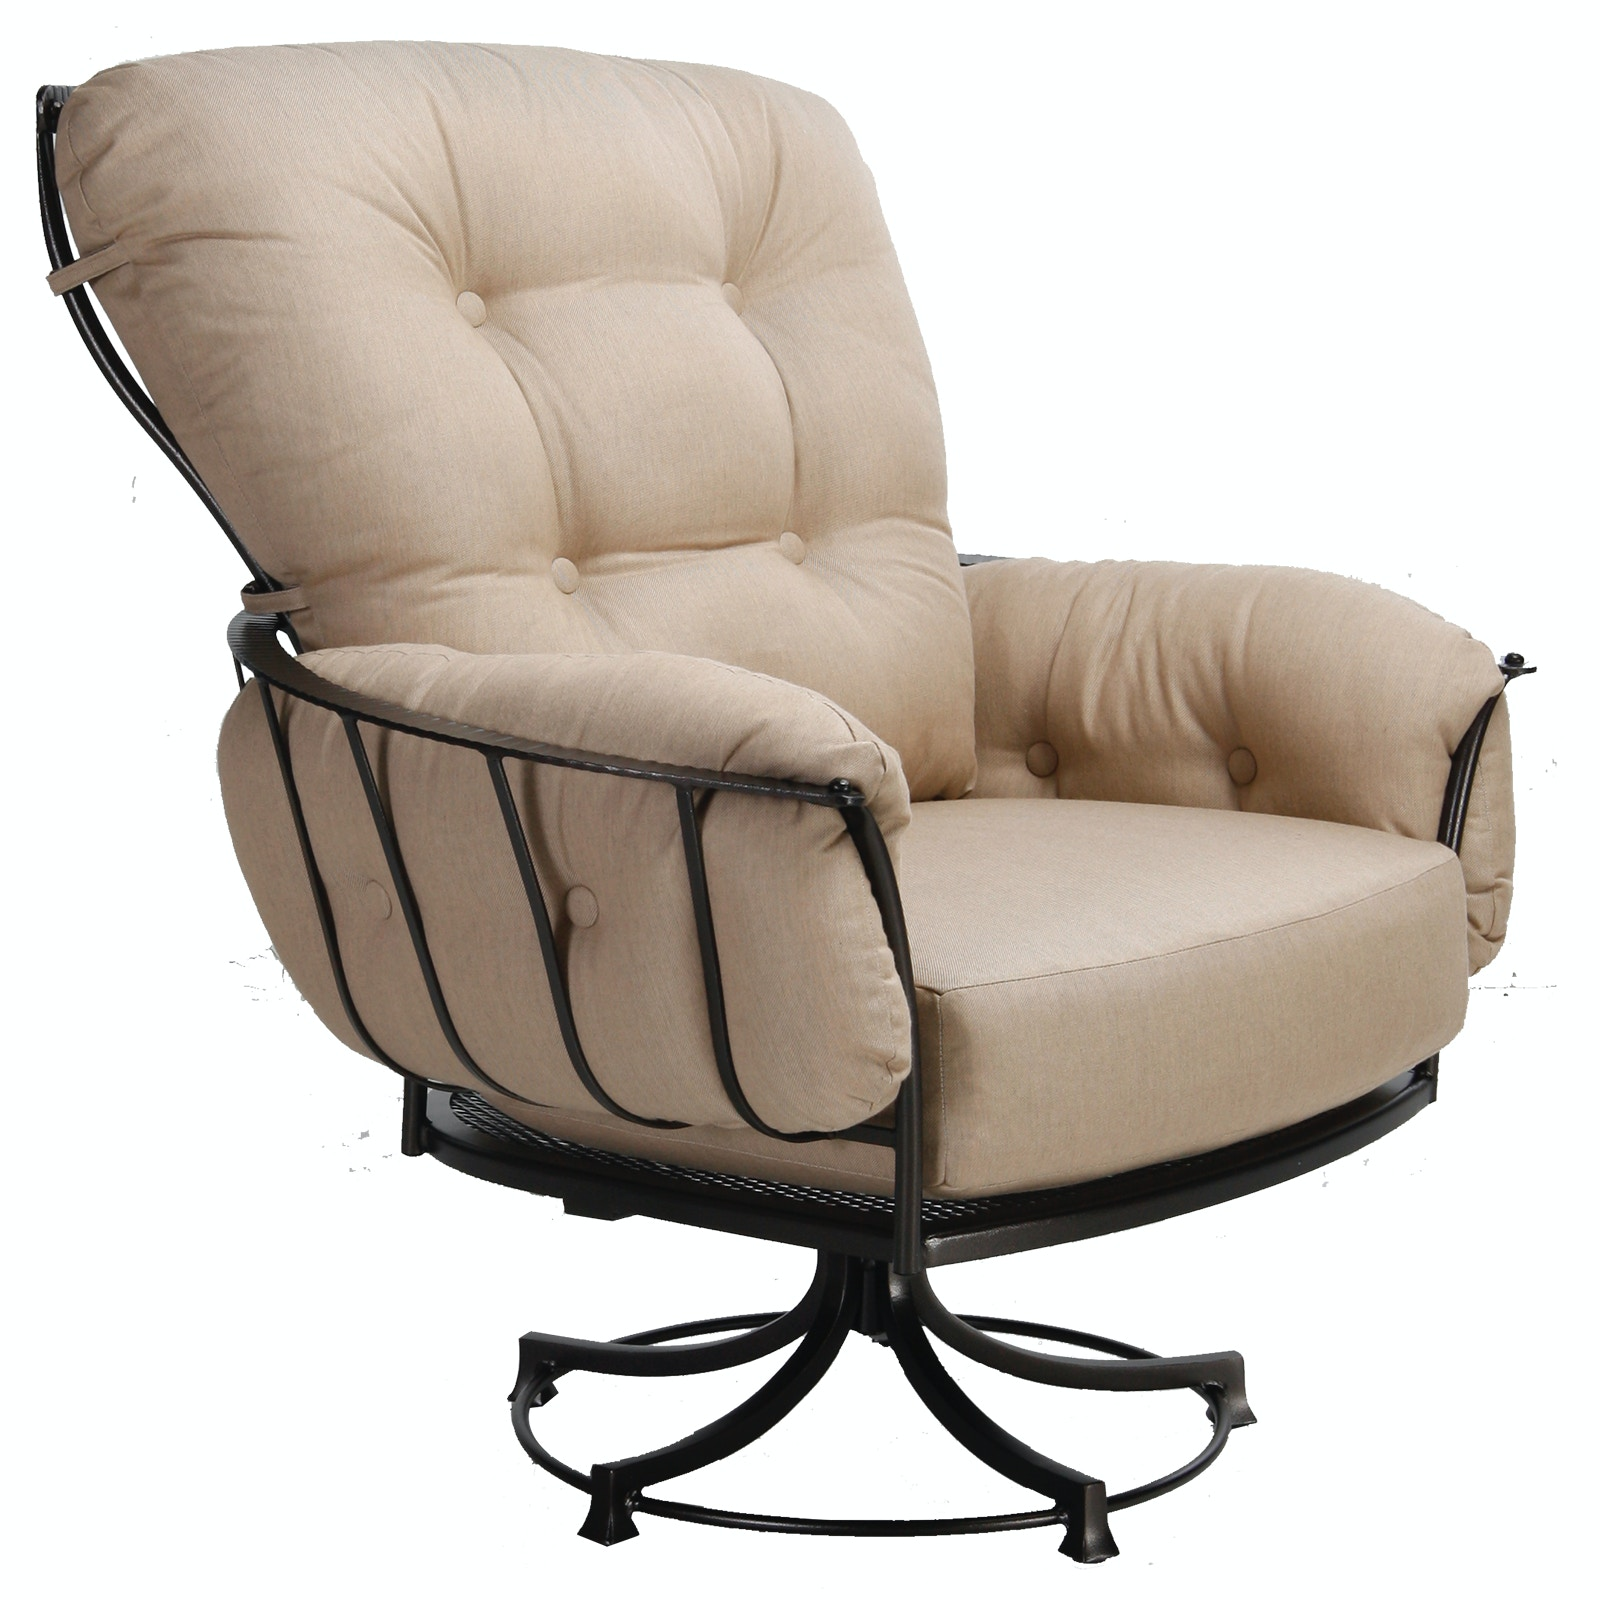 Delicieux OW Lee Furniture Monterra Swivel Rocker Lounge Chair 421 SR